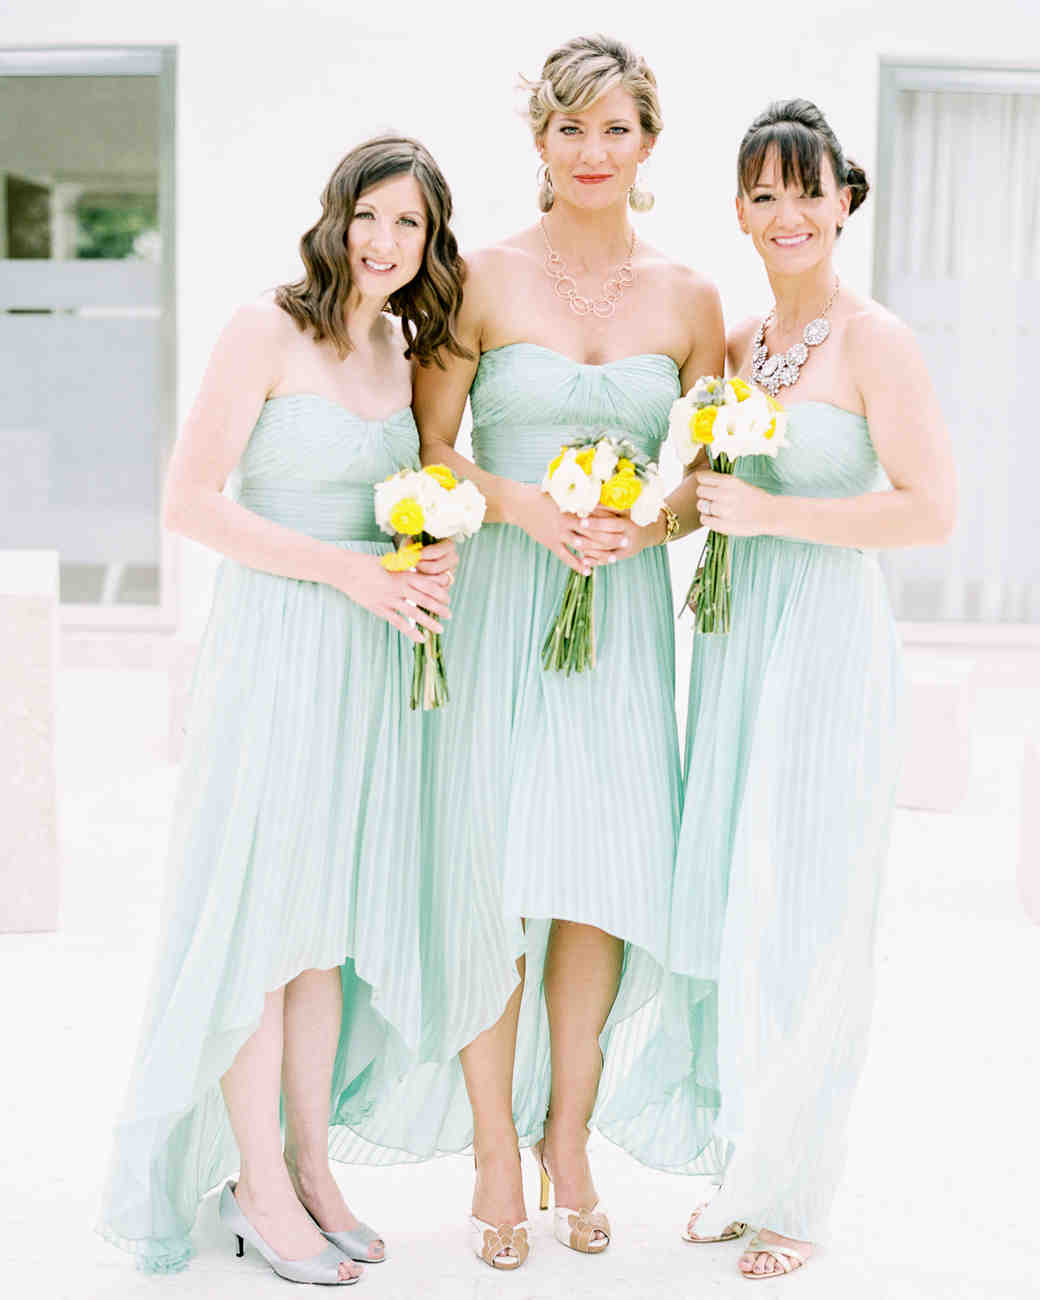 molly-nate-wedding-bridesmaids-115-s111479-0814.jpg